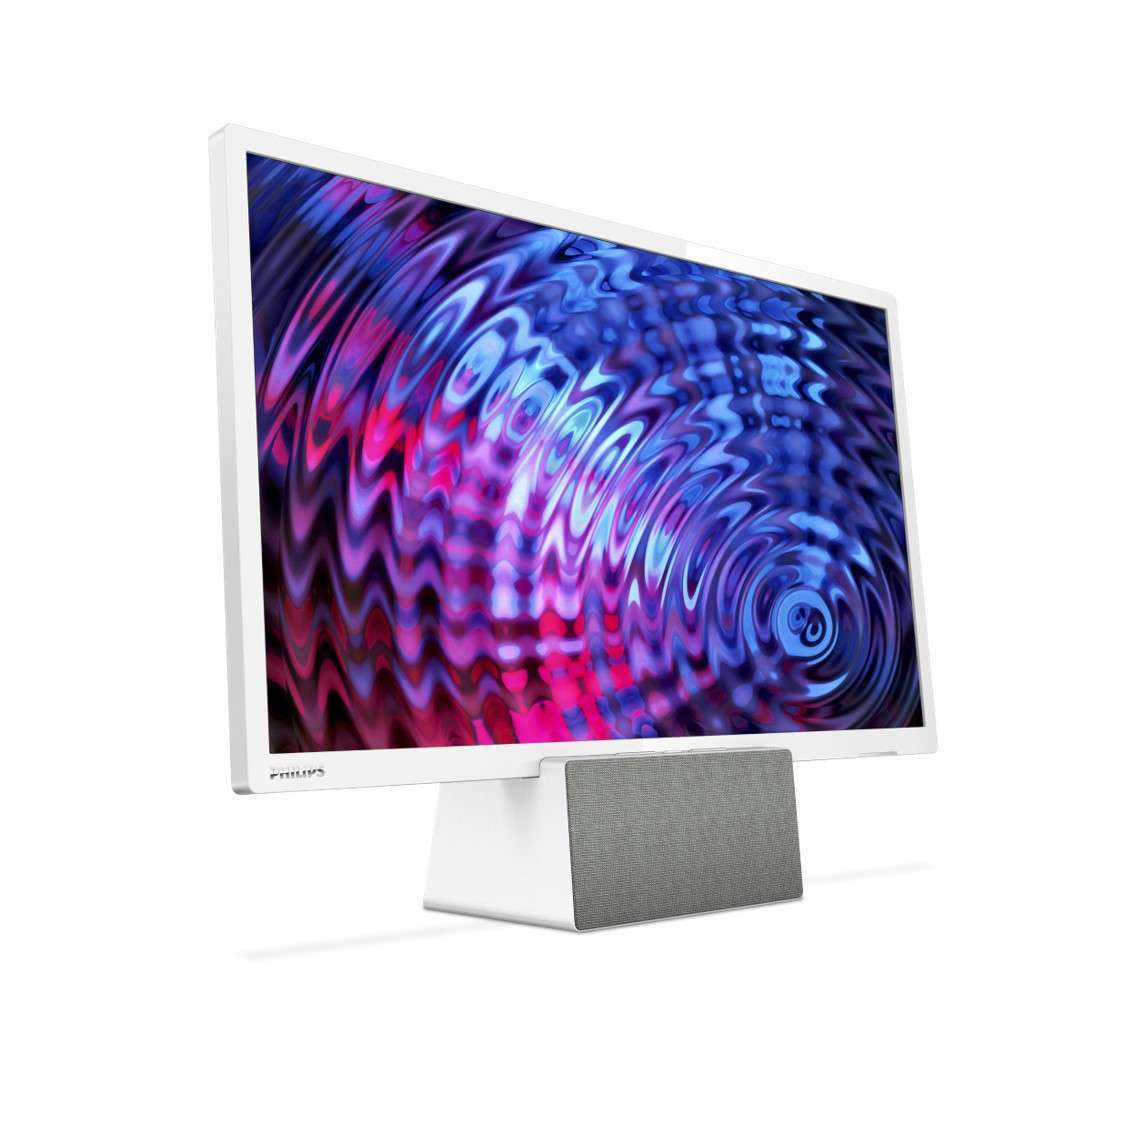 Philips TV serie 5 bianco